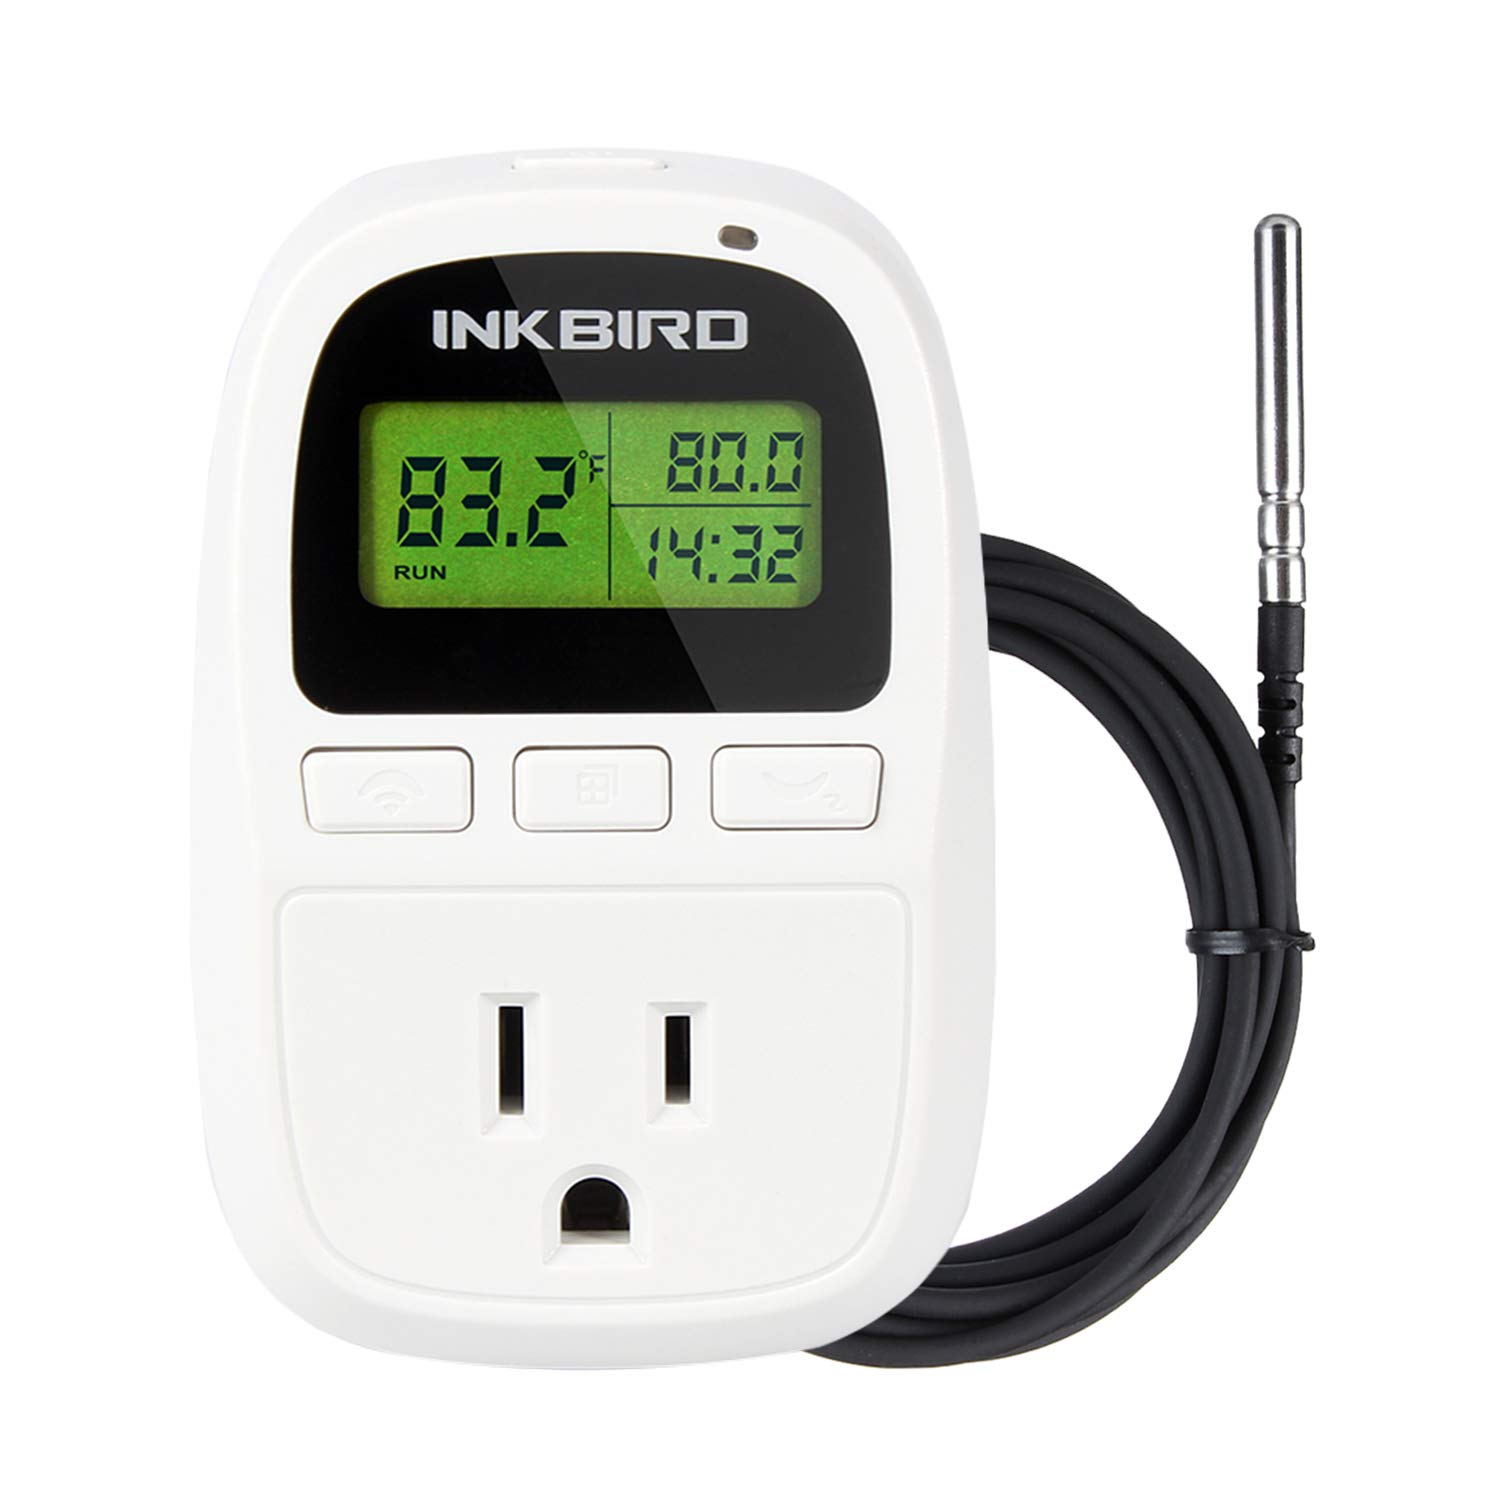 Inkbird C206T 1500W Heat Mat Temperature Controller Day and Night Thermostat 6.56 Feet NTC Sensor F and C Degree -58 to 212F